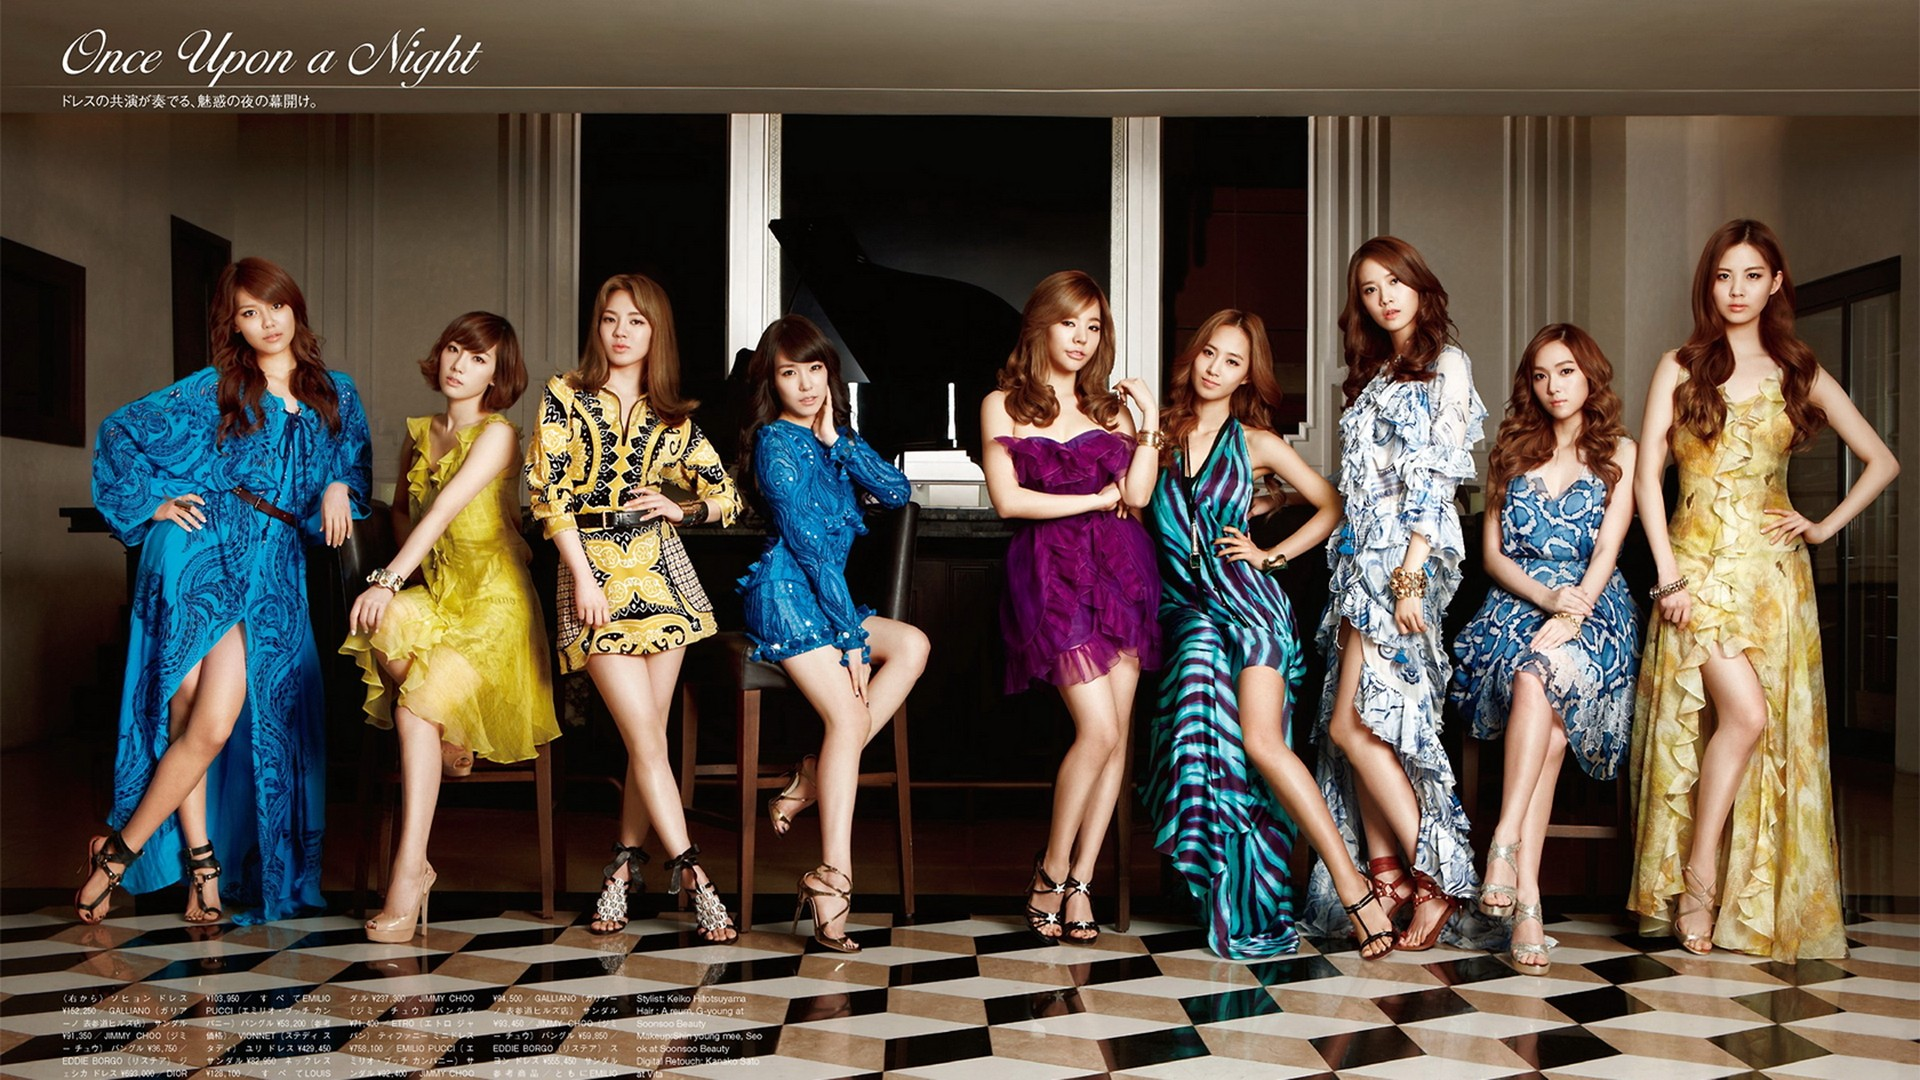 Snsd Asians Korean Korea Asia K Pop South Korea Fresh New Hd Wallpaper Wallpaper